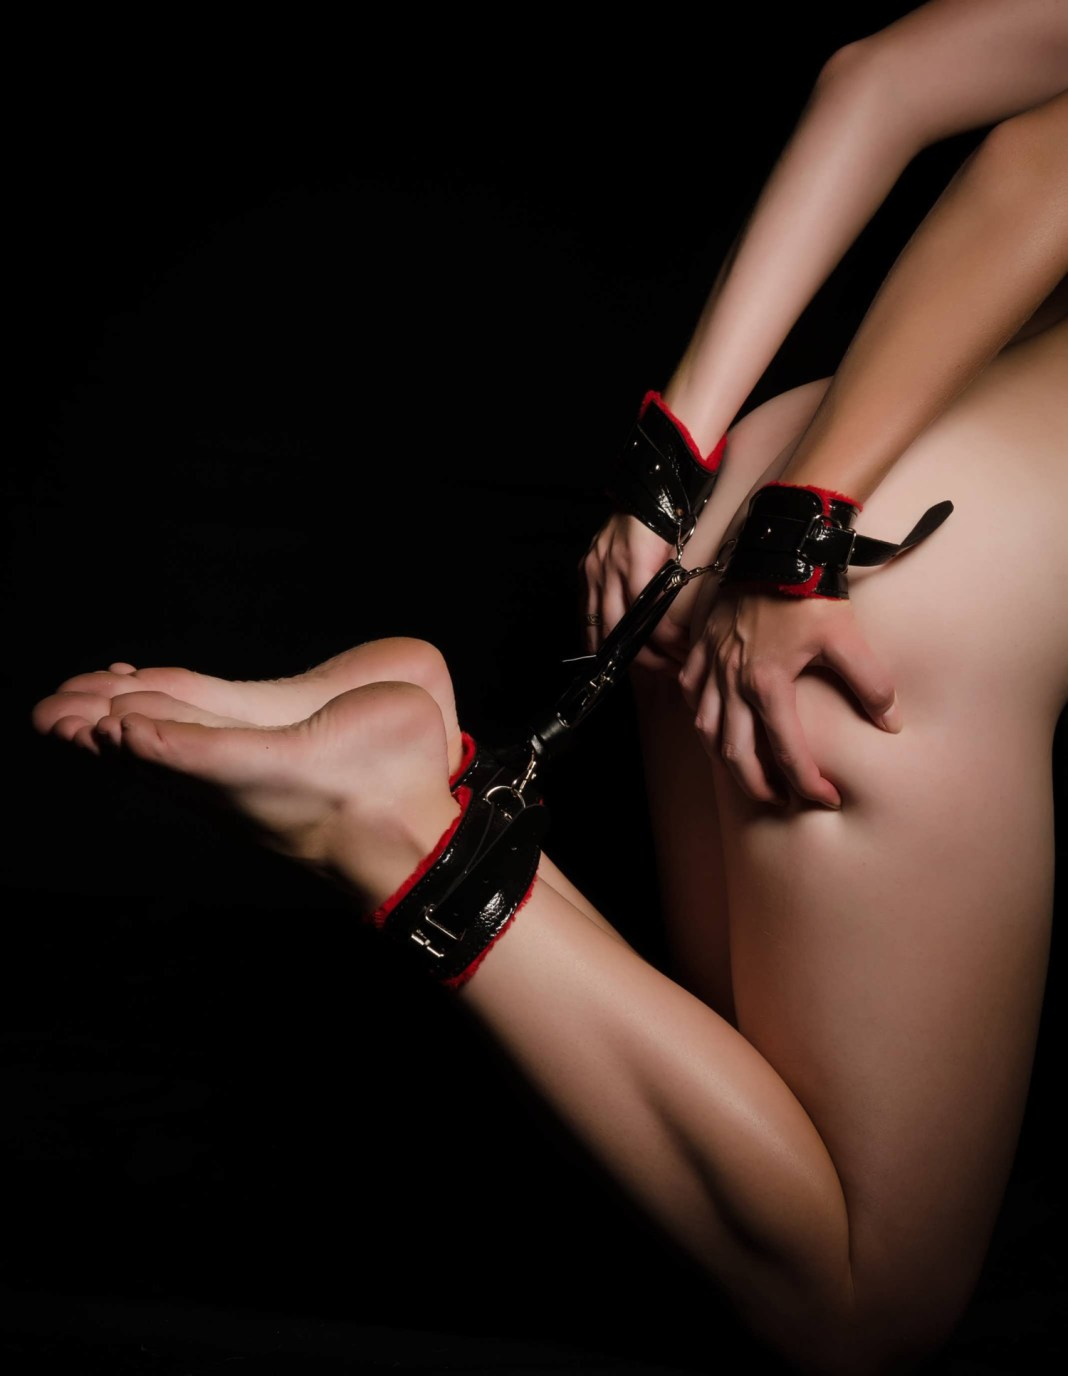 woman in bondage which is on a list of kinks